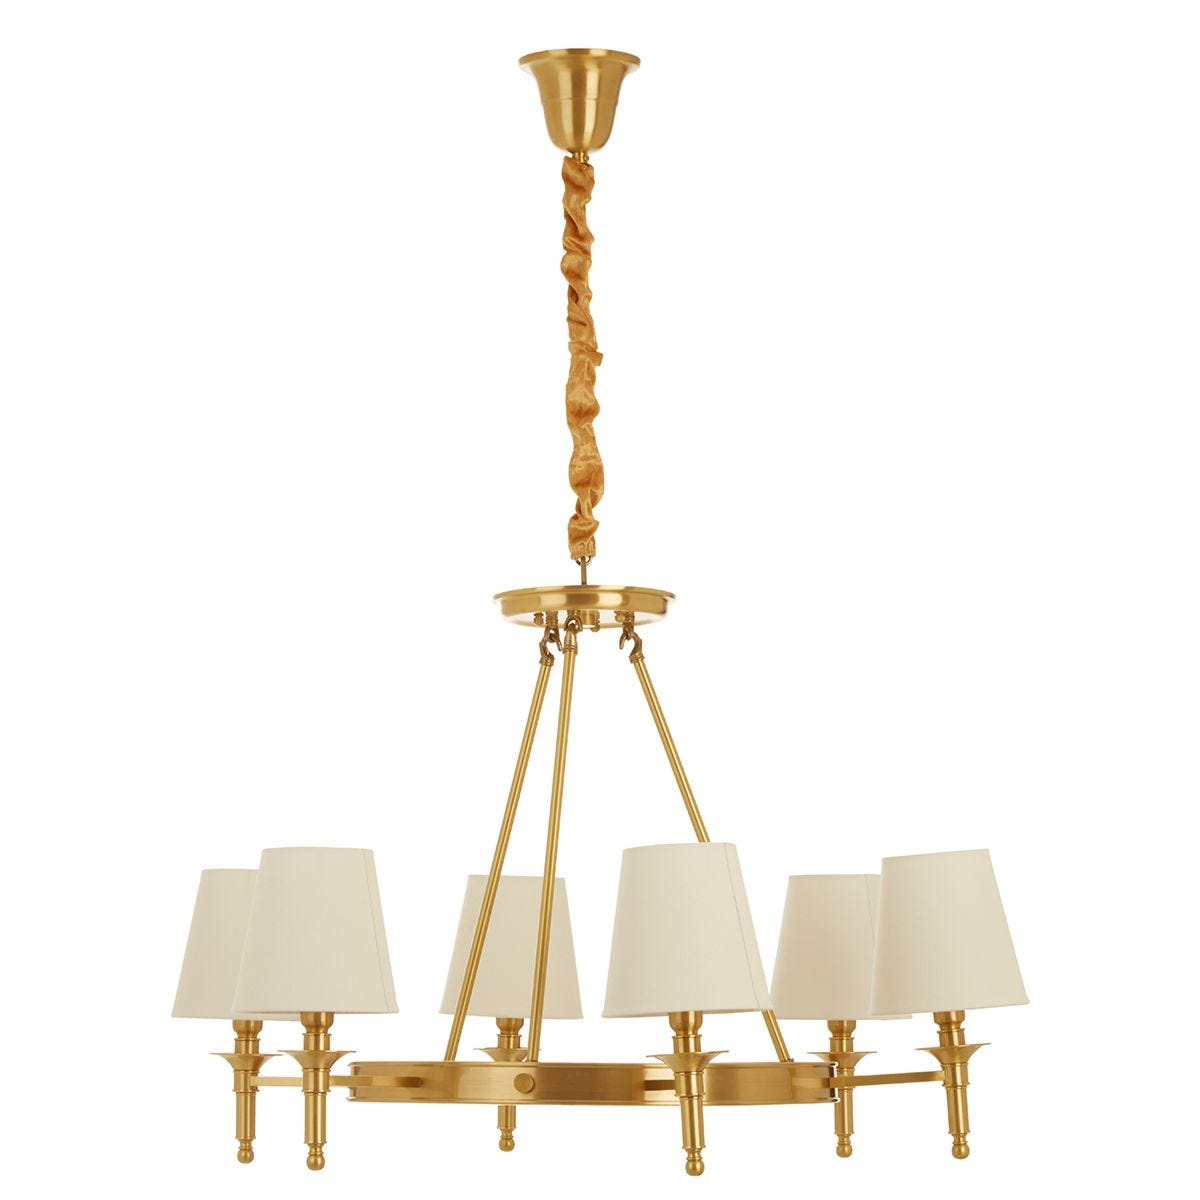 Premier Housewares Zina Ceiling Light in Gold with 6 Linen Shades